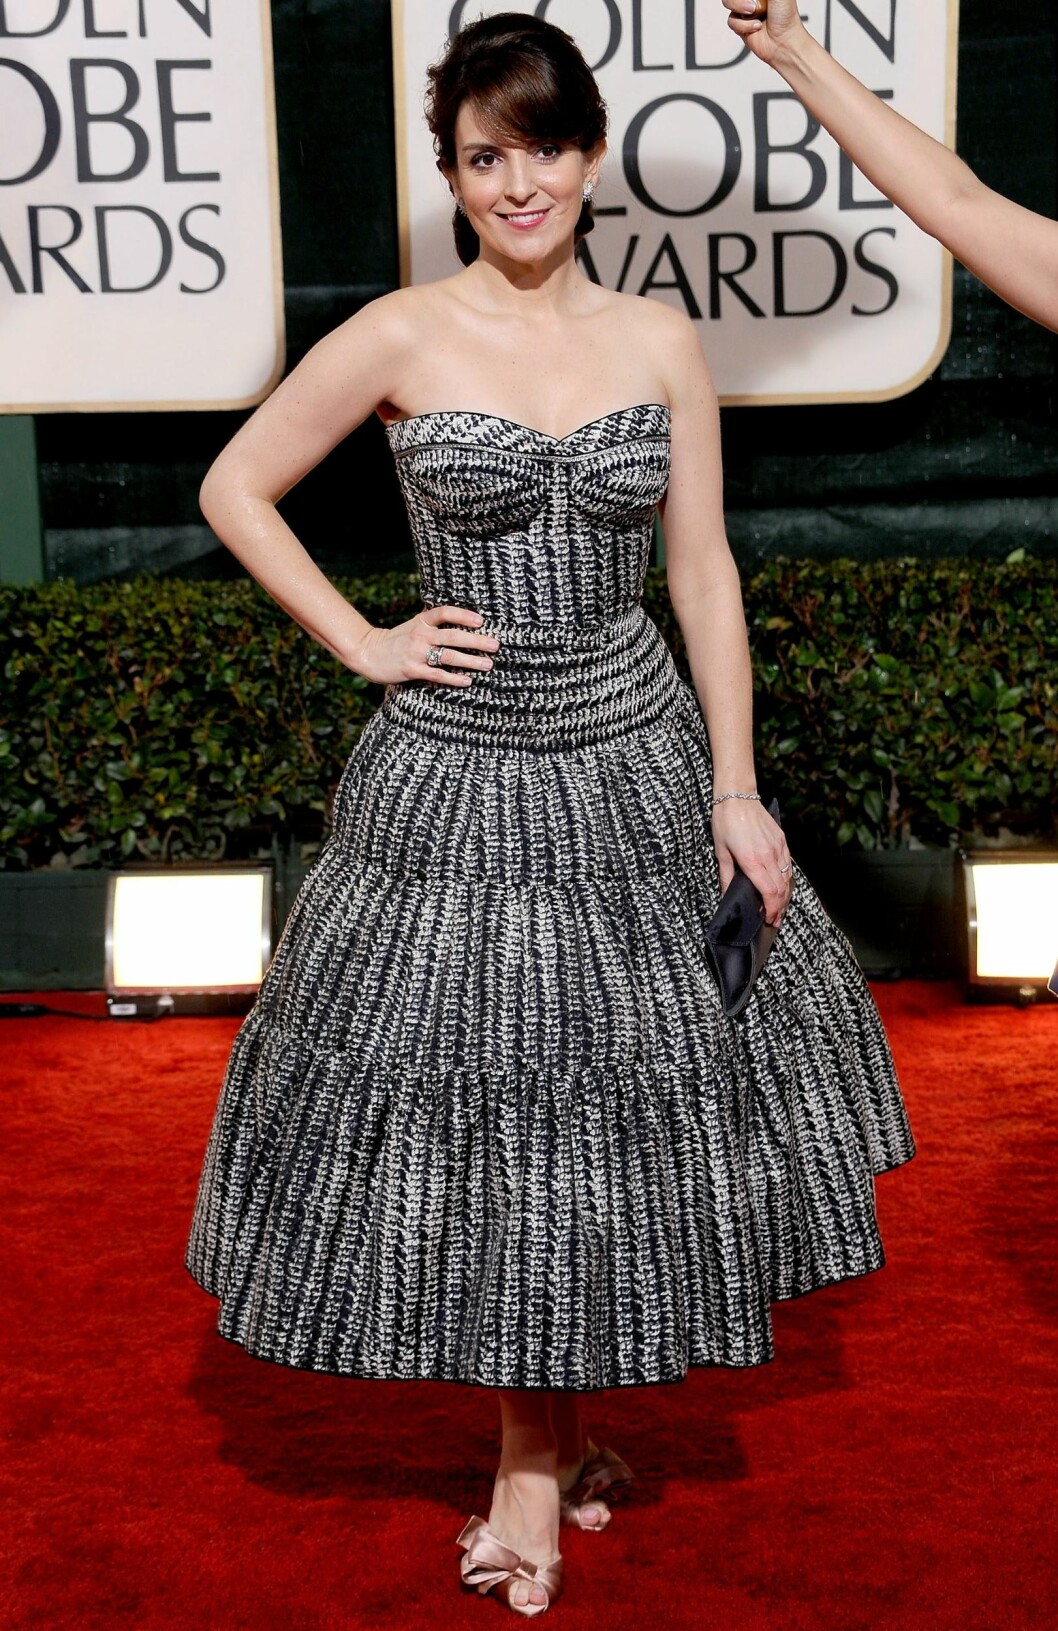 Skuespiller Tina Fey i en feminin kjole fra Zac Posen. Foto: All Over Press